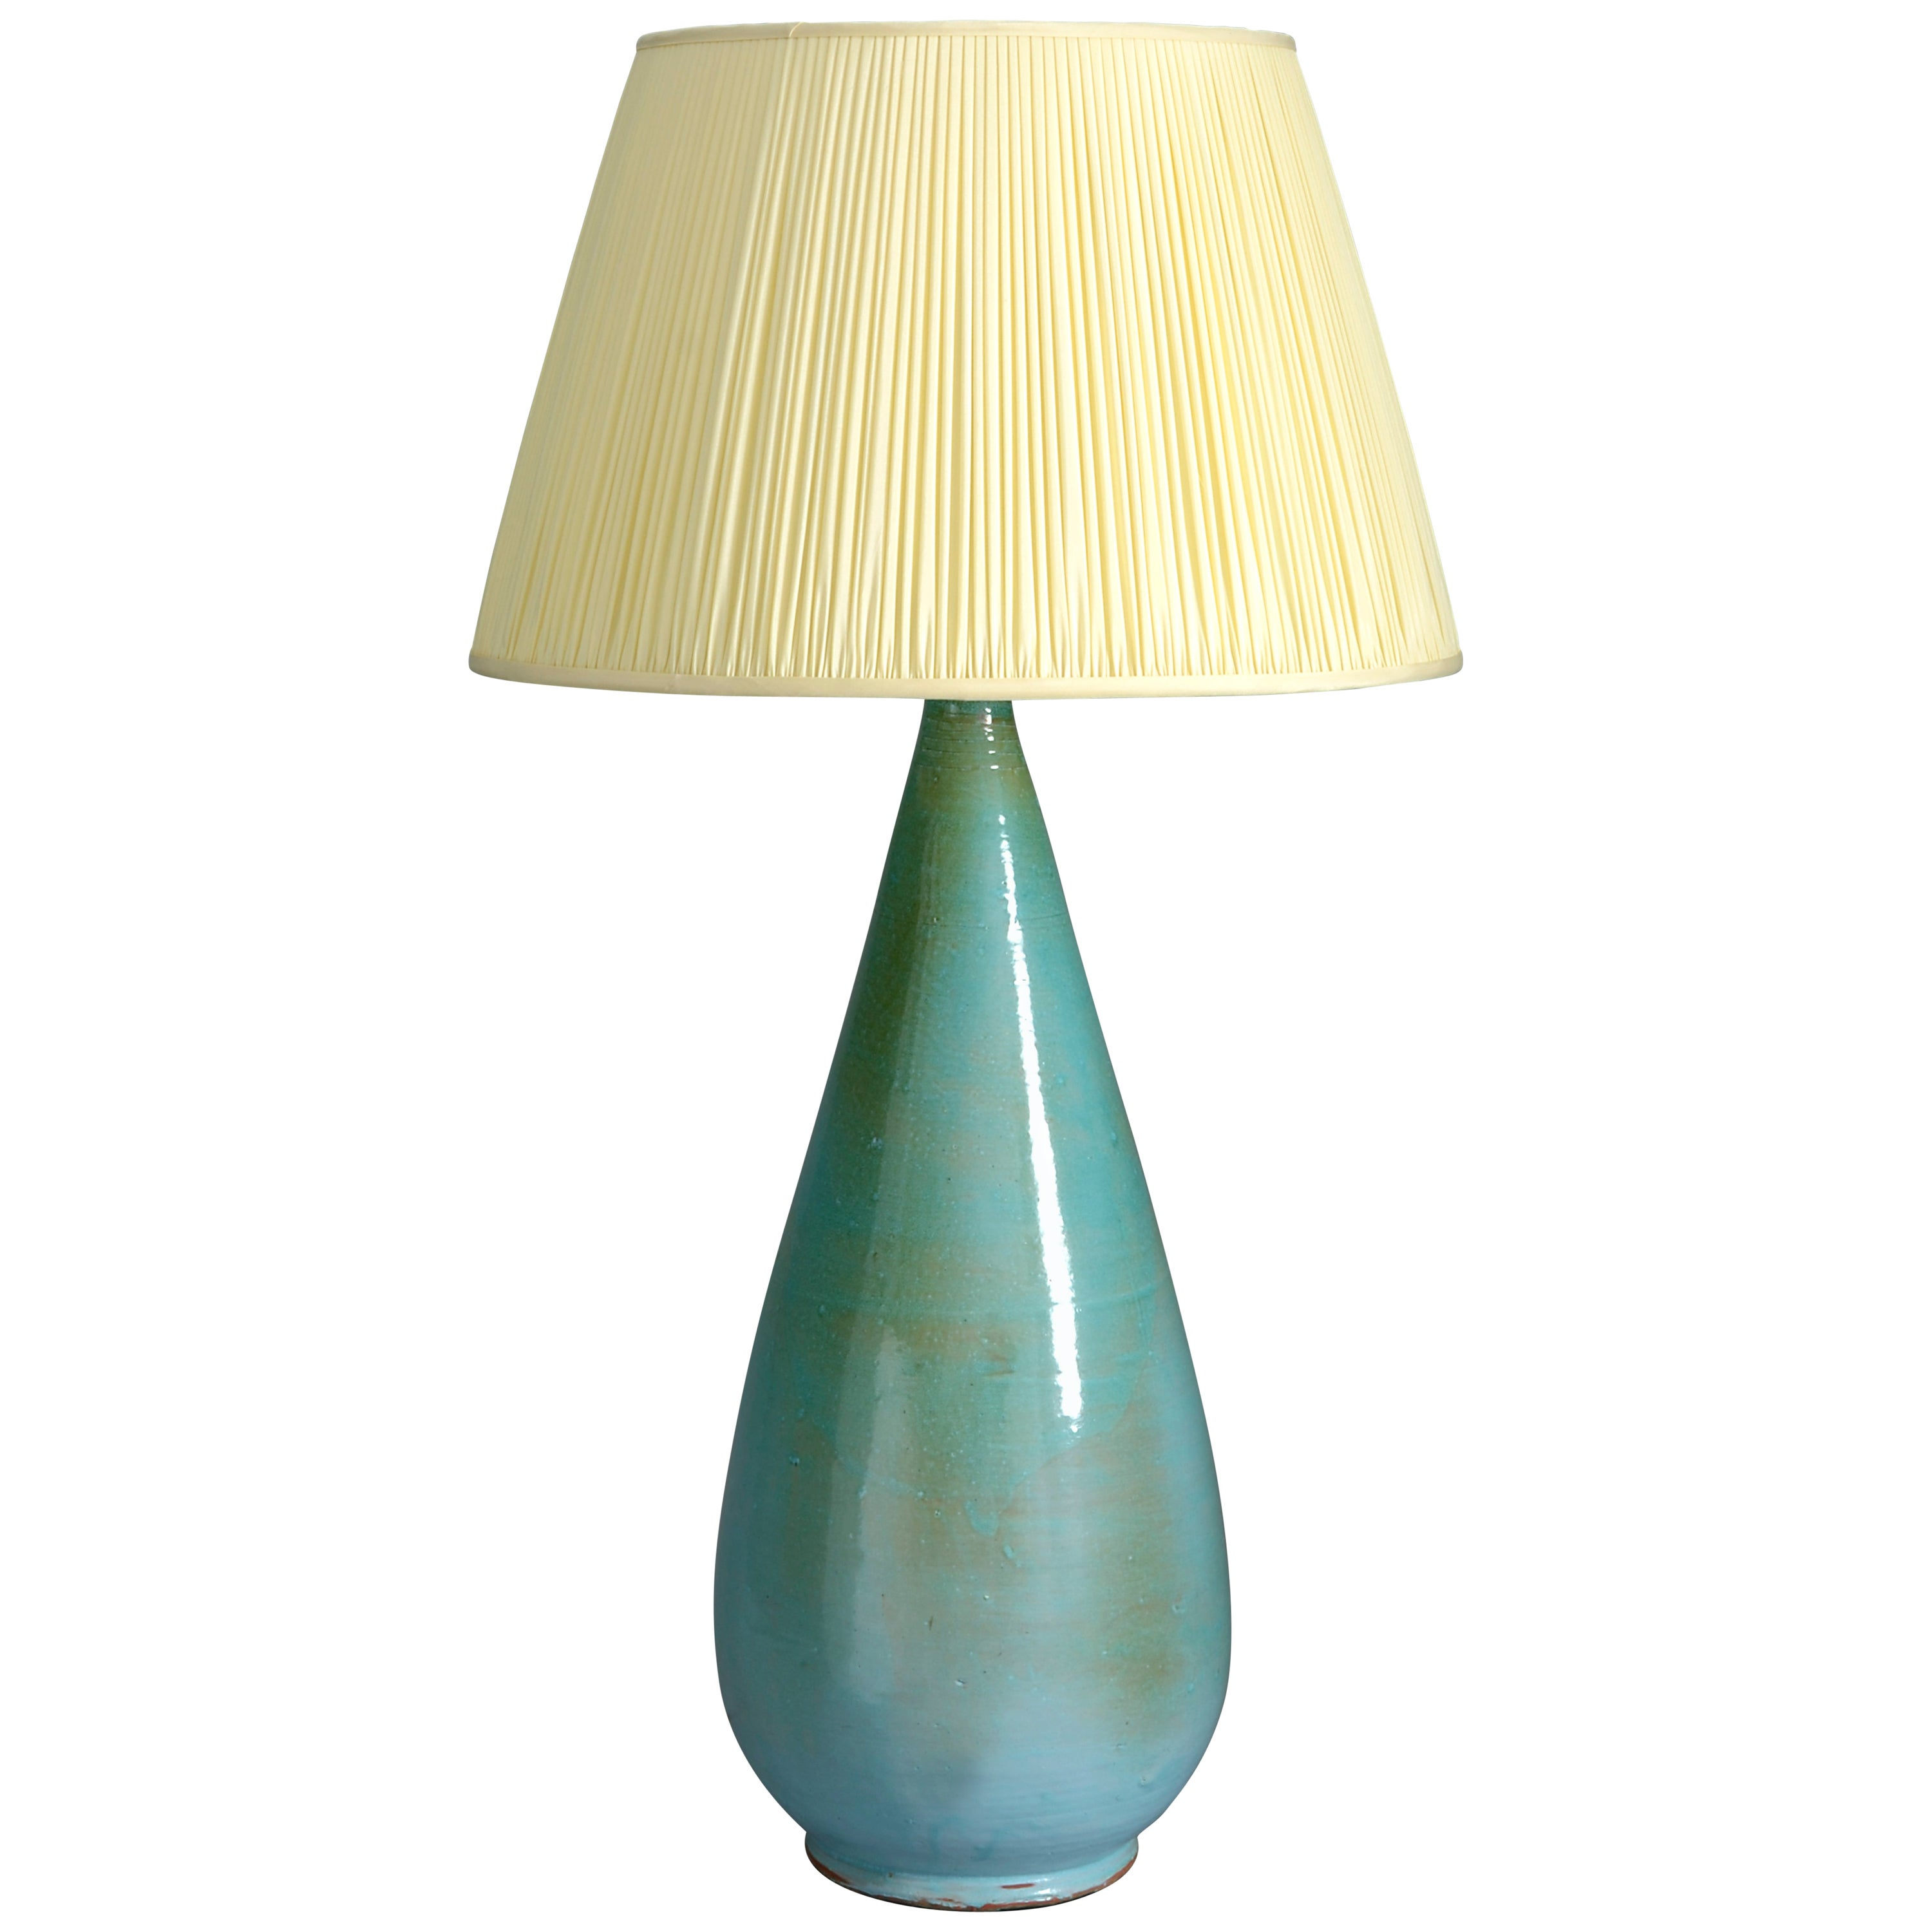 20th Century Turquoise Glazed Studio Pottery Vase Lamp